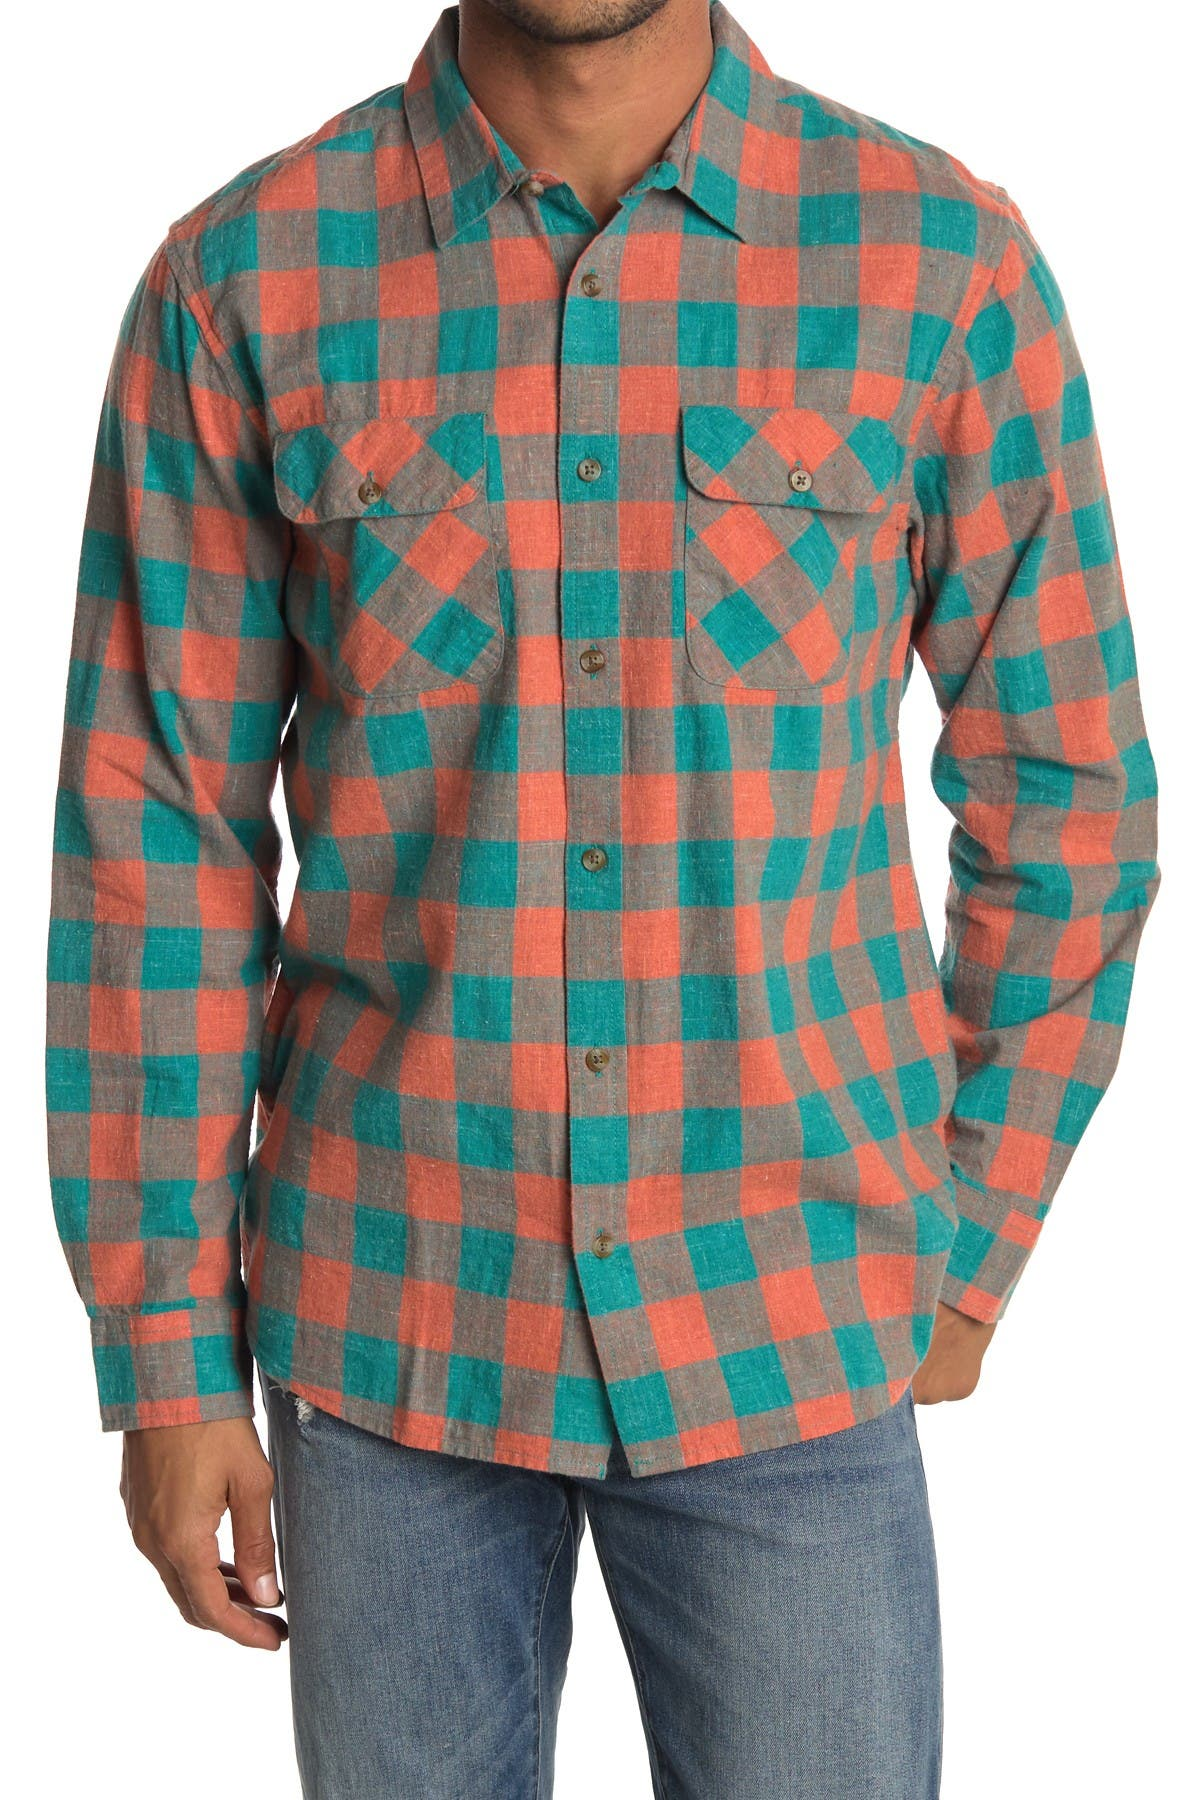 Image of Rip Curl Checked Out Plaid Print Flannel Shirt